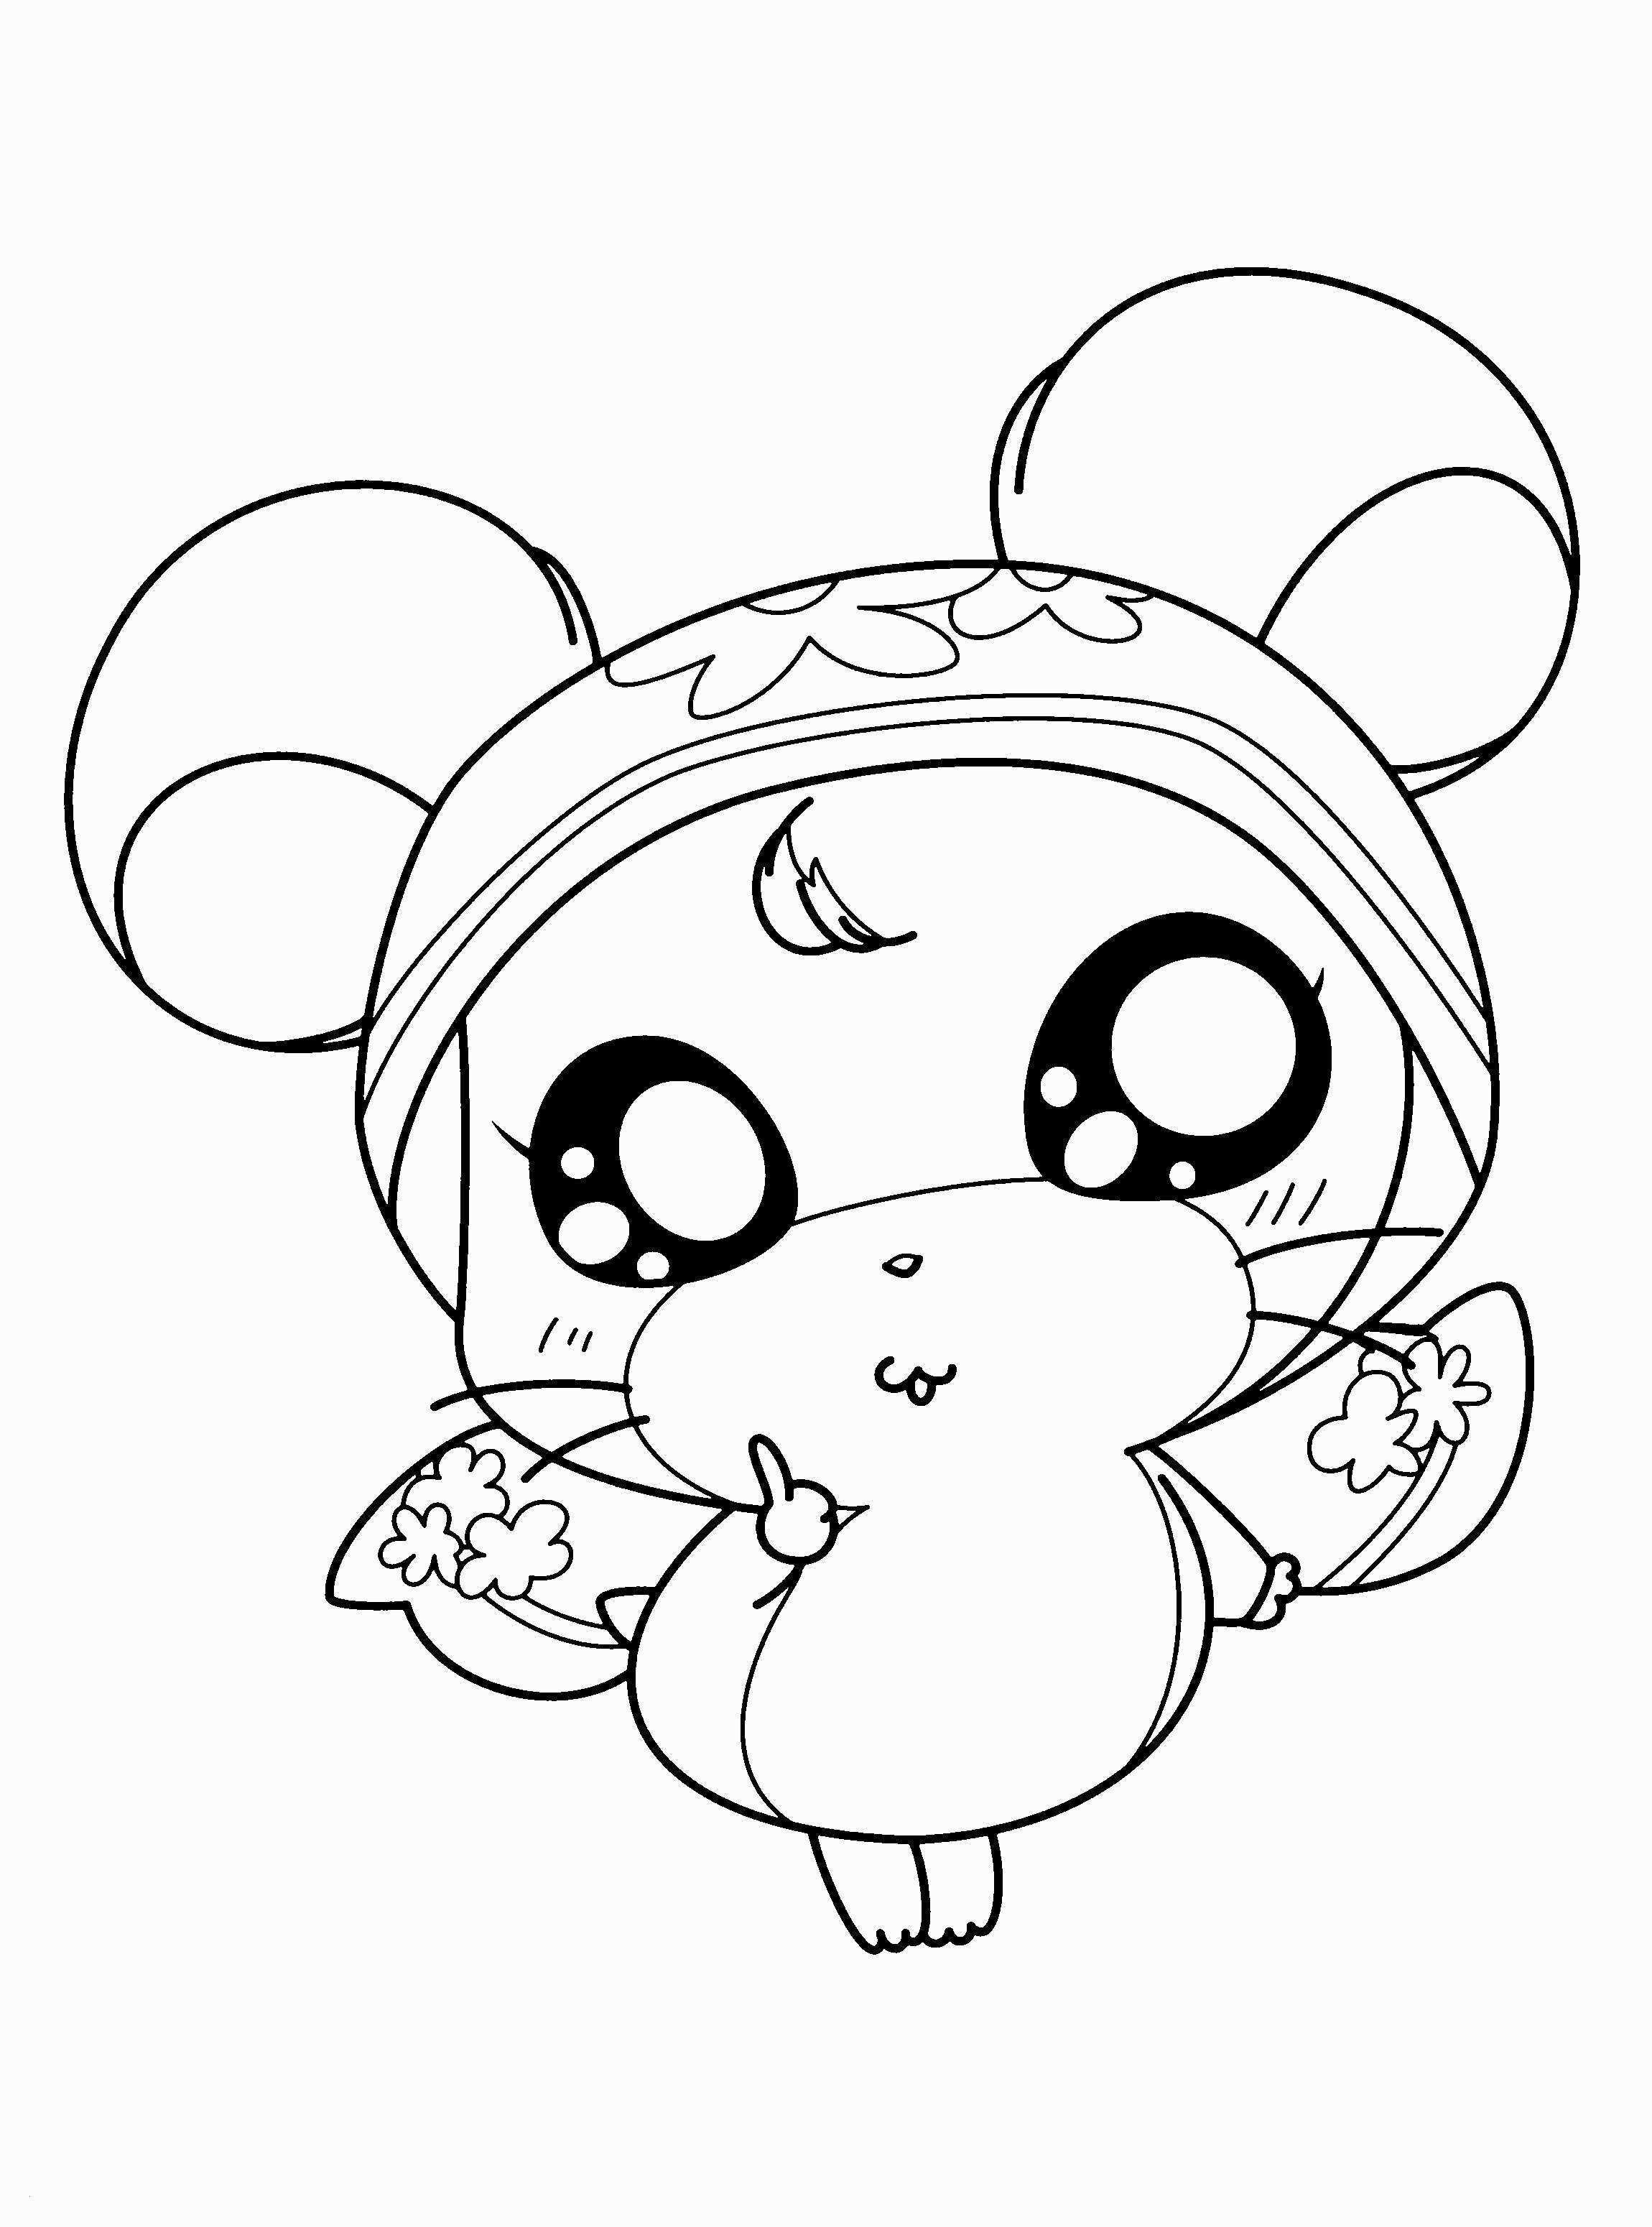 Baby Mickey Mouse Coloring Pages Inspirational 35 Minnie Maus